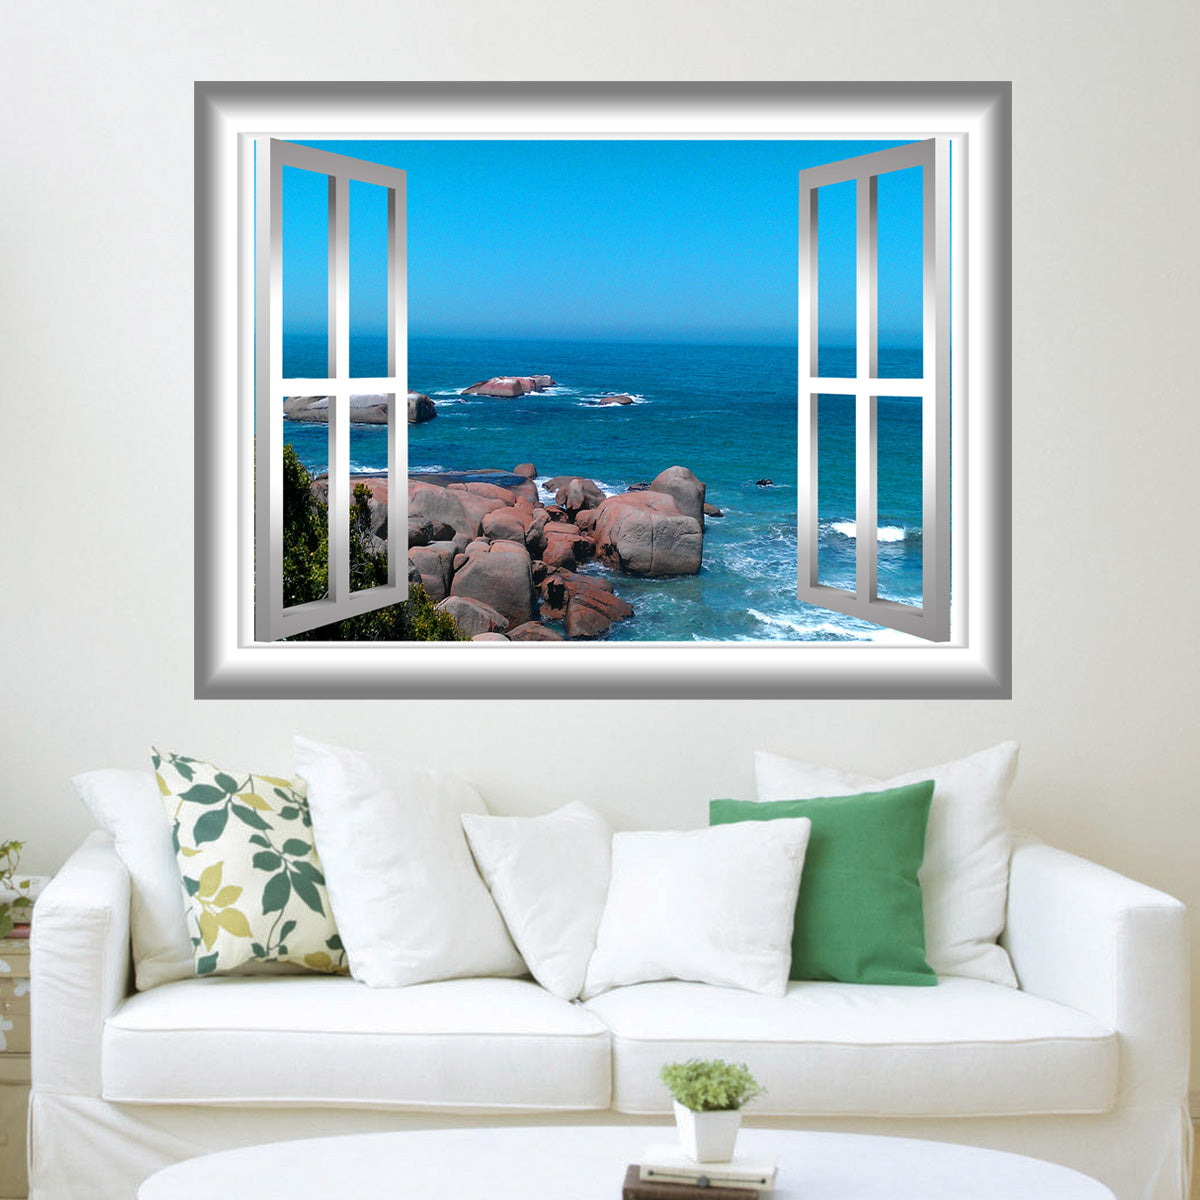 VWAQ Ocean Scene Rocky Beach Peel and Stick Window Frame Vinyl Wall Decal - NW74 - VWAQ Vinyl Wall Art Quotes and Prints